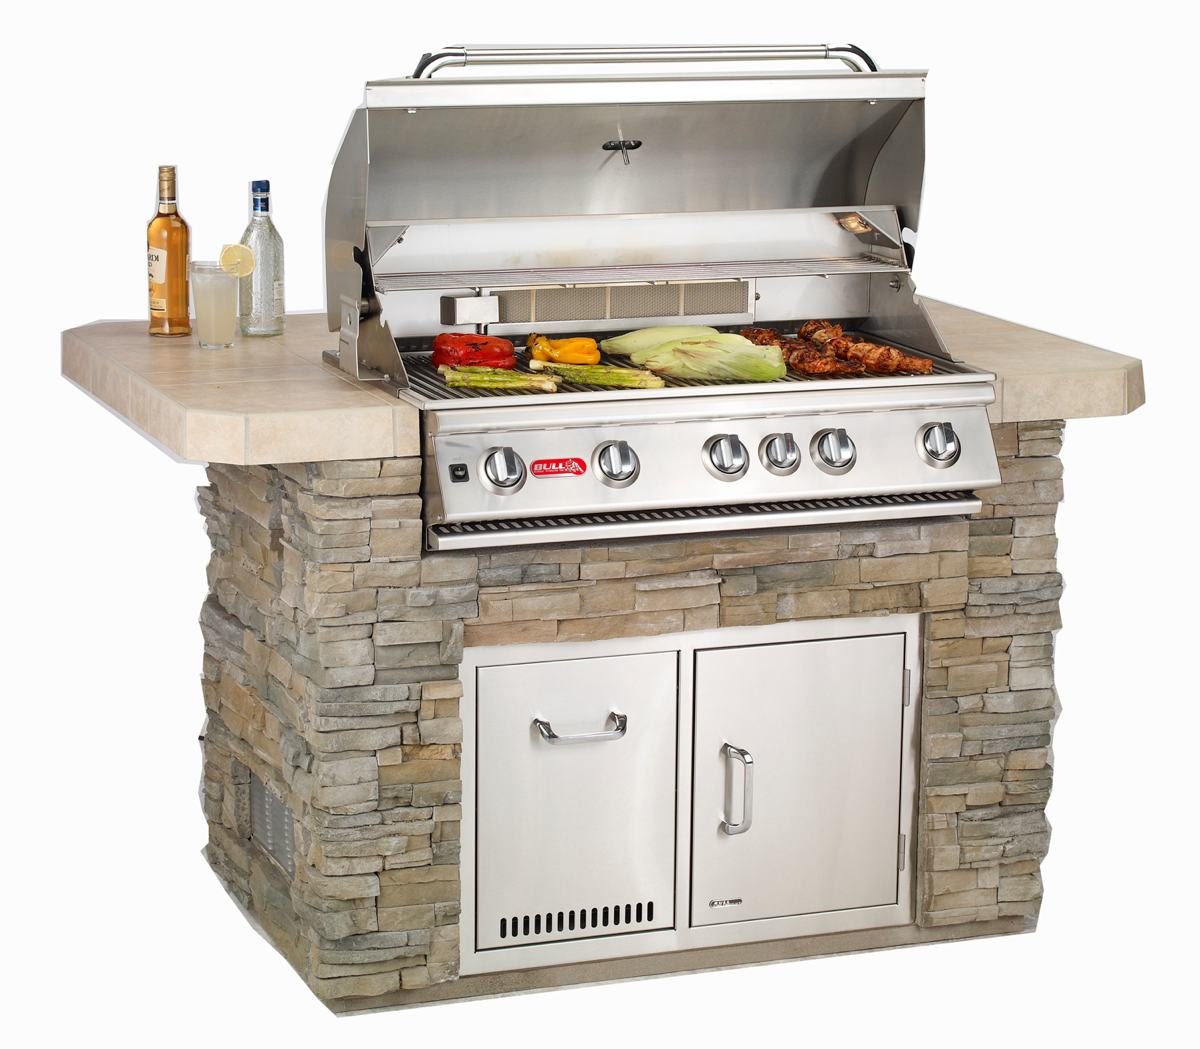 Bull outdoor products bbq 57569 brahma 90 000 btu grill for Pre built outdoor kitchen islands